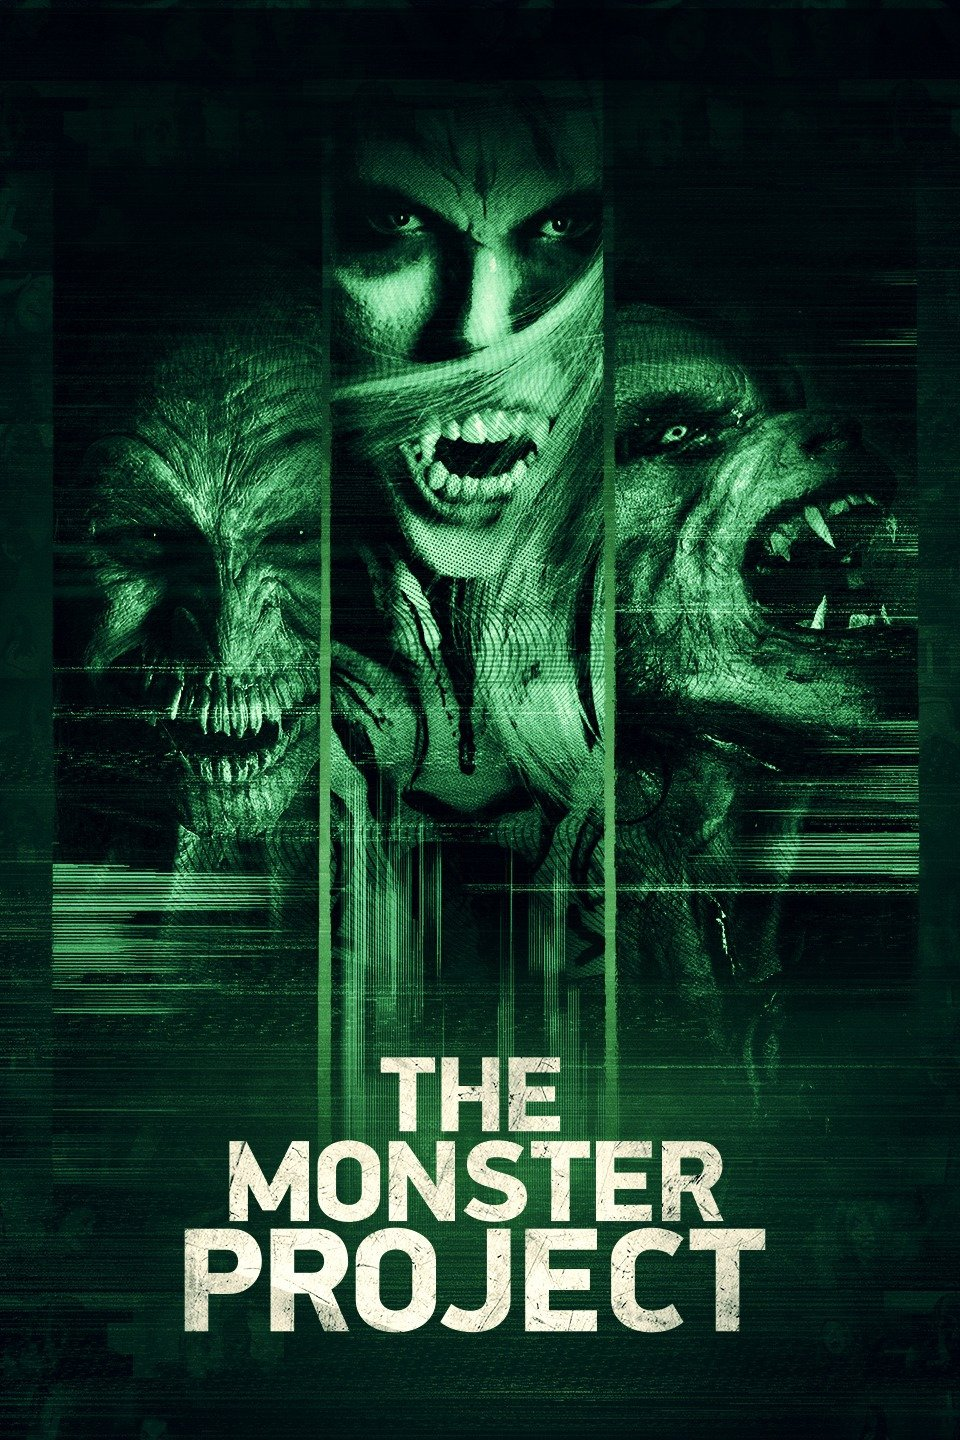 Download The Monster Project (2017) WEB-DL 720p Subtitle Indonesia